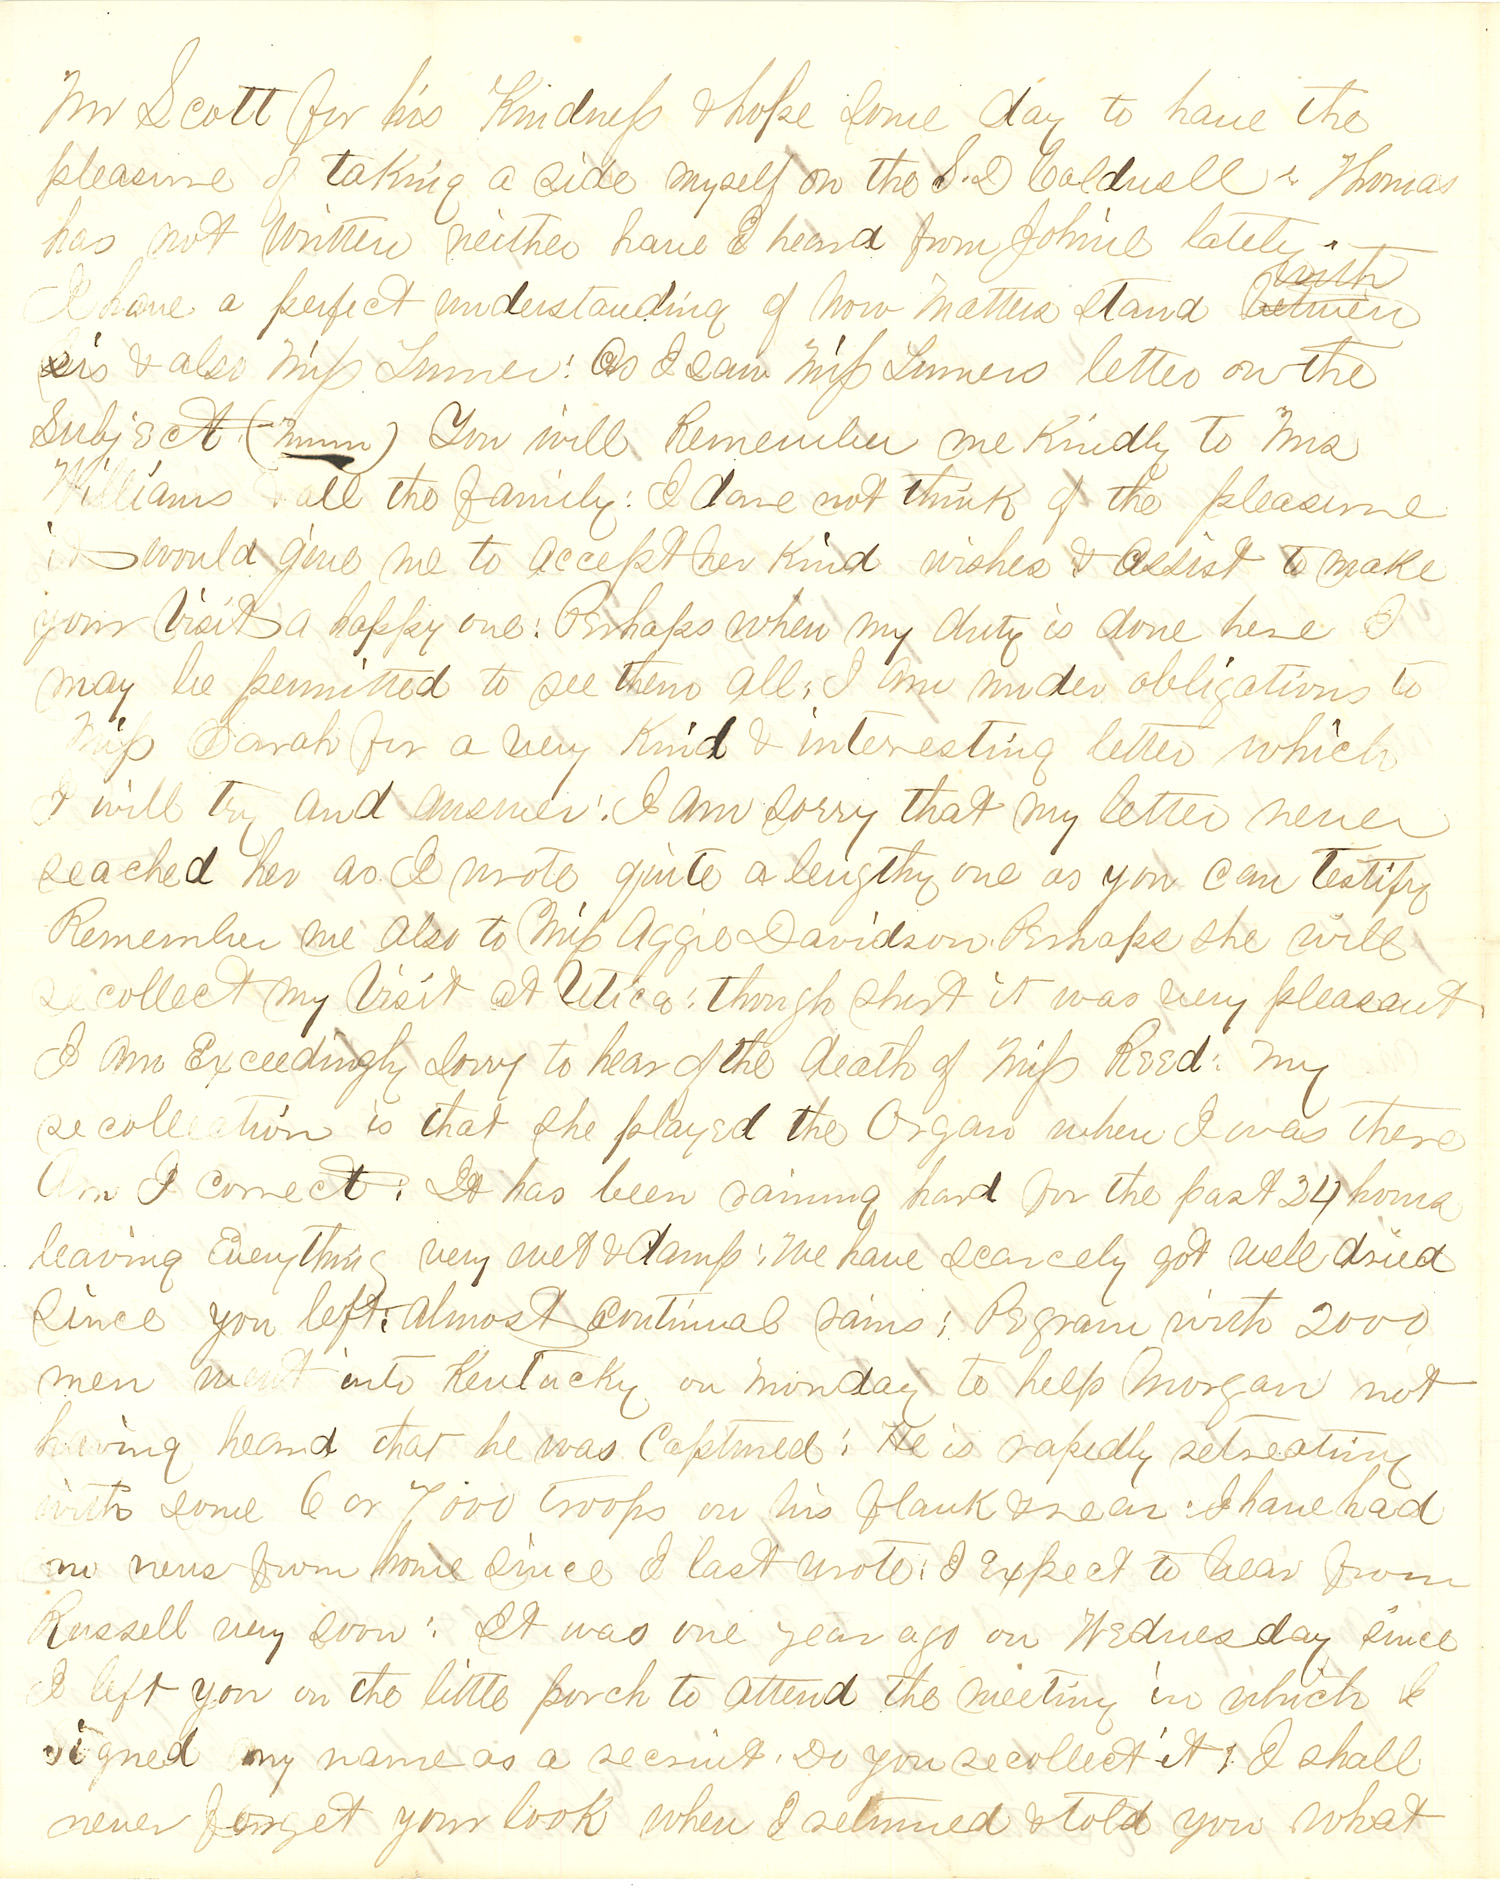 Joseph Culver Letter, July 30, 1863, Page 2